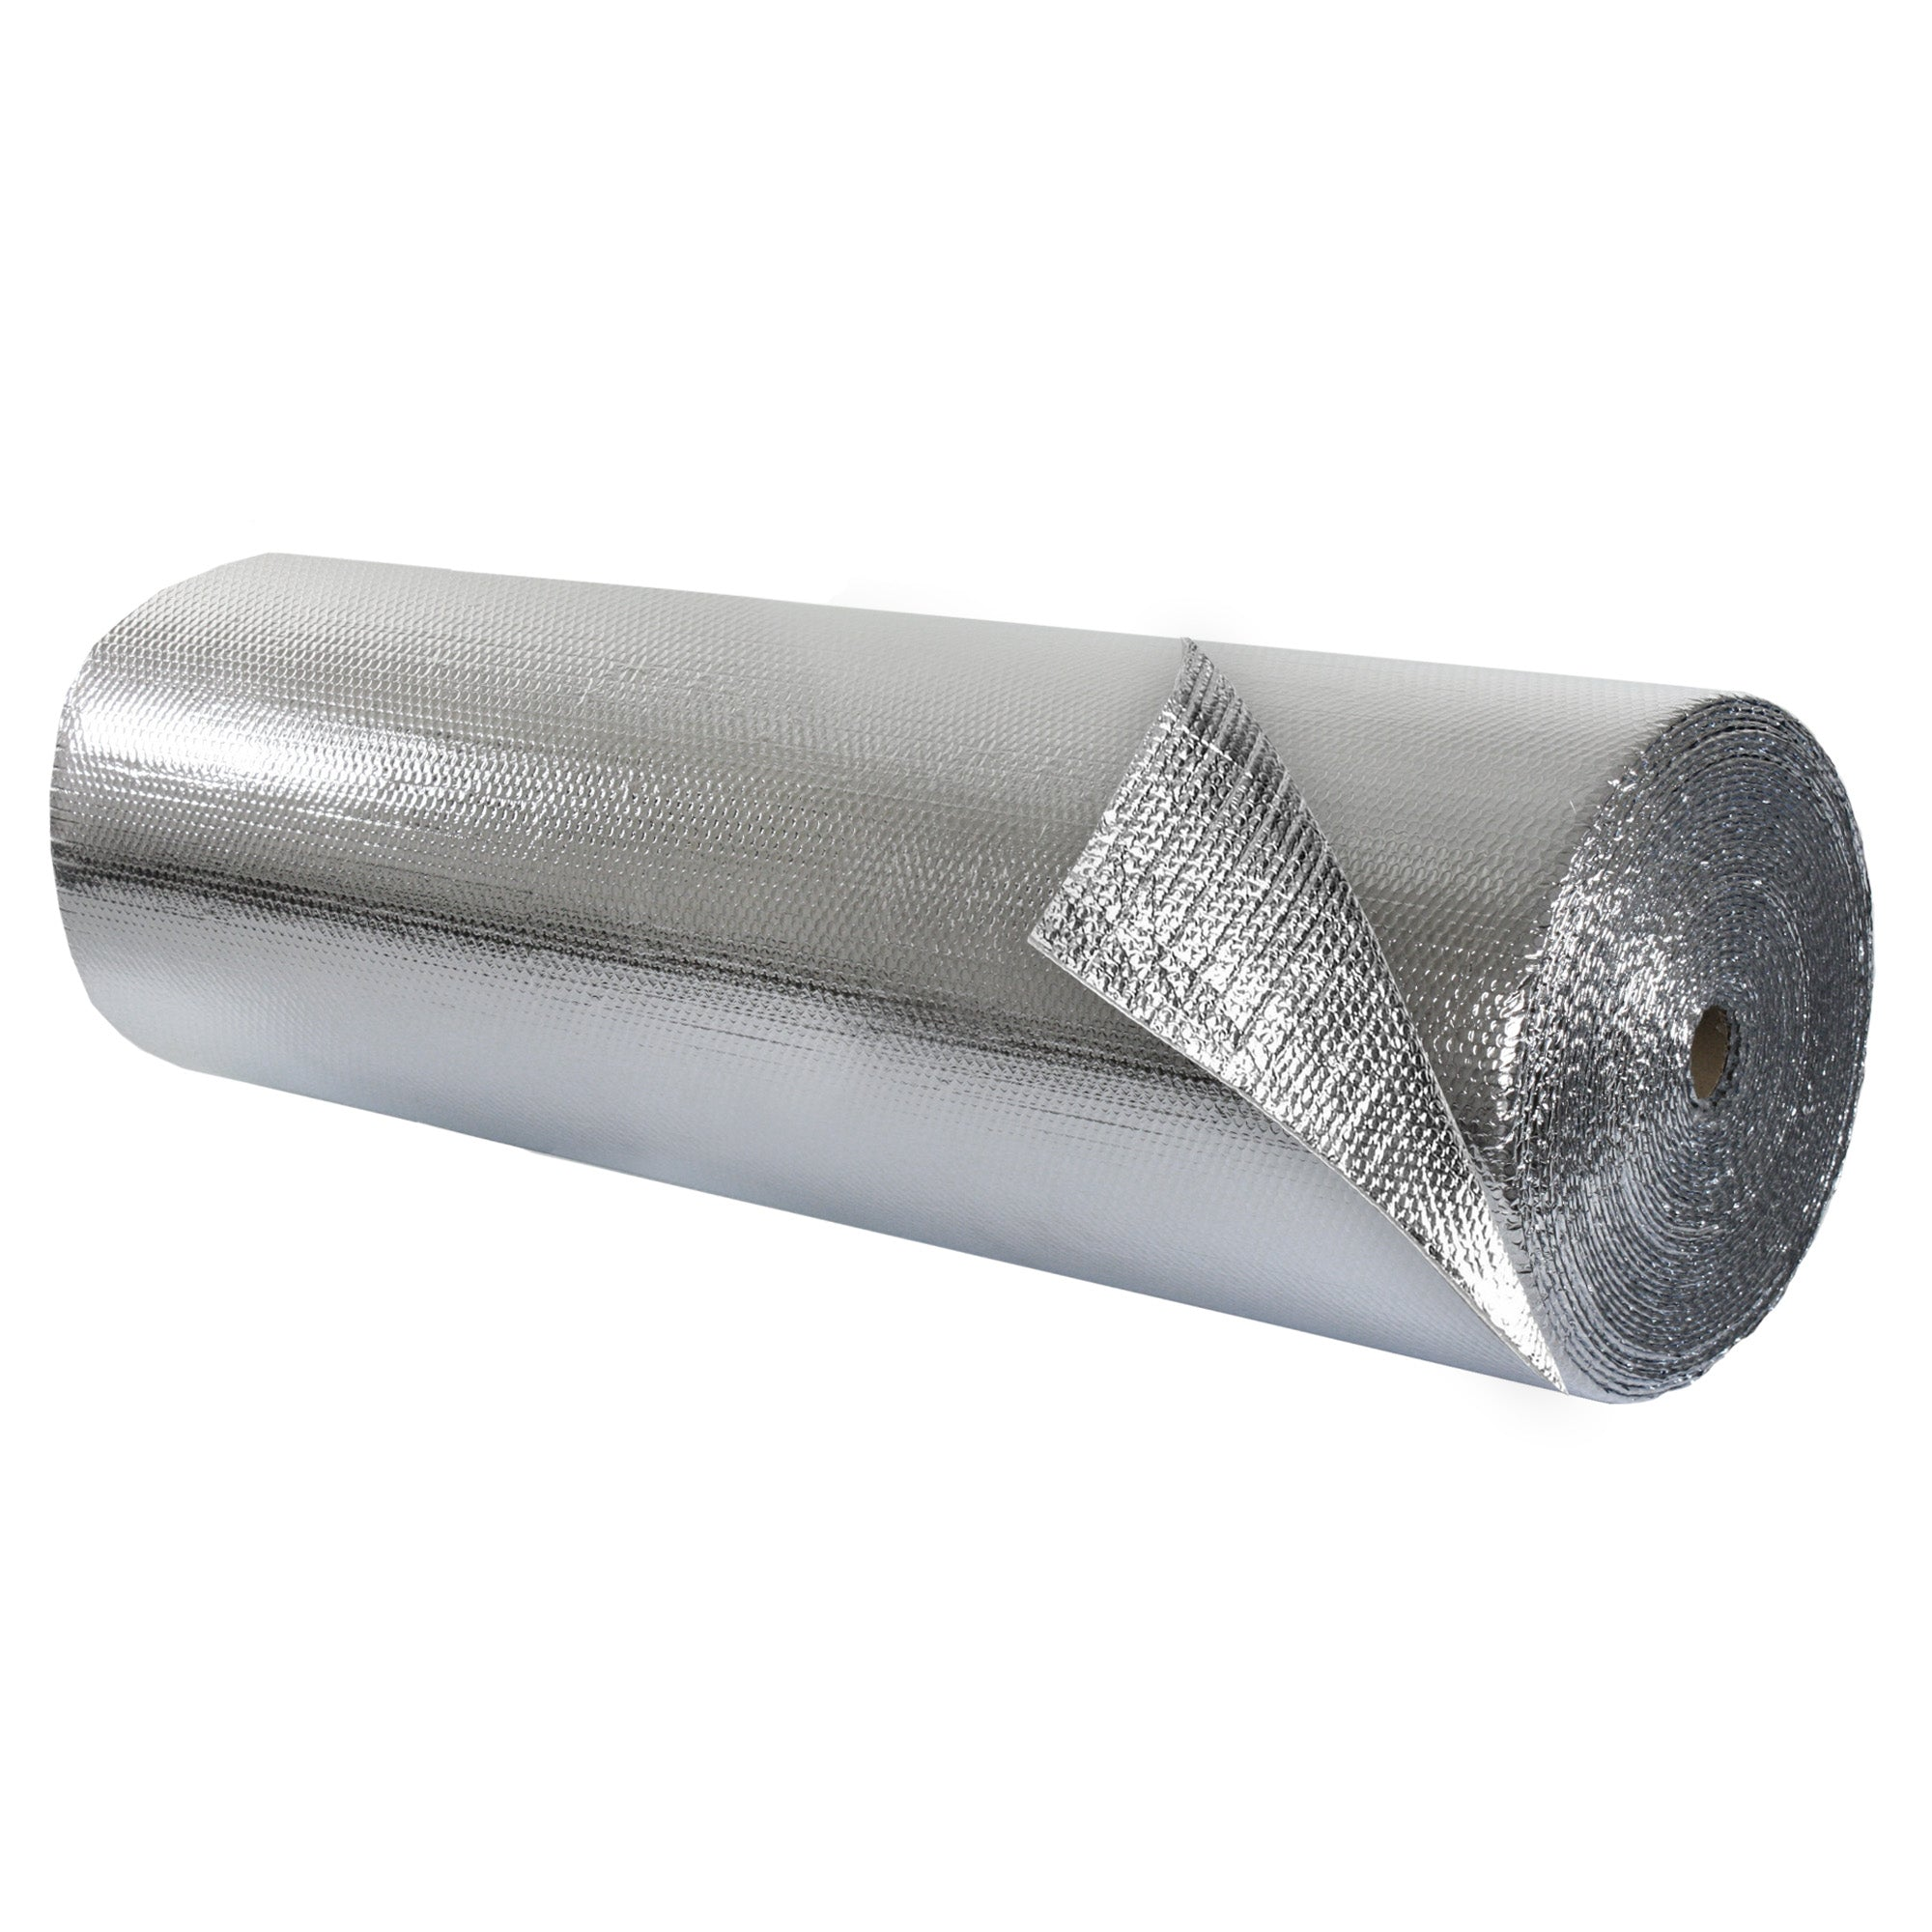 Double Bubble Insulation Foil_Foil 6 foot x 125 foot 750 sq ft